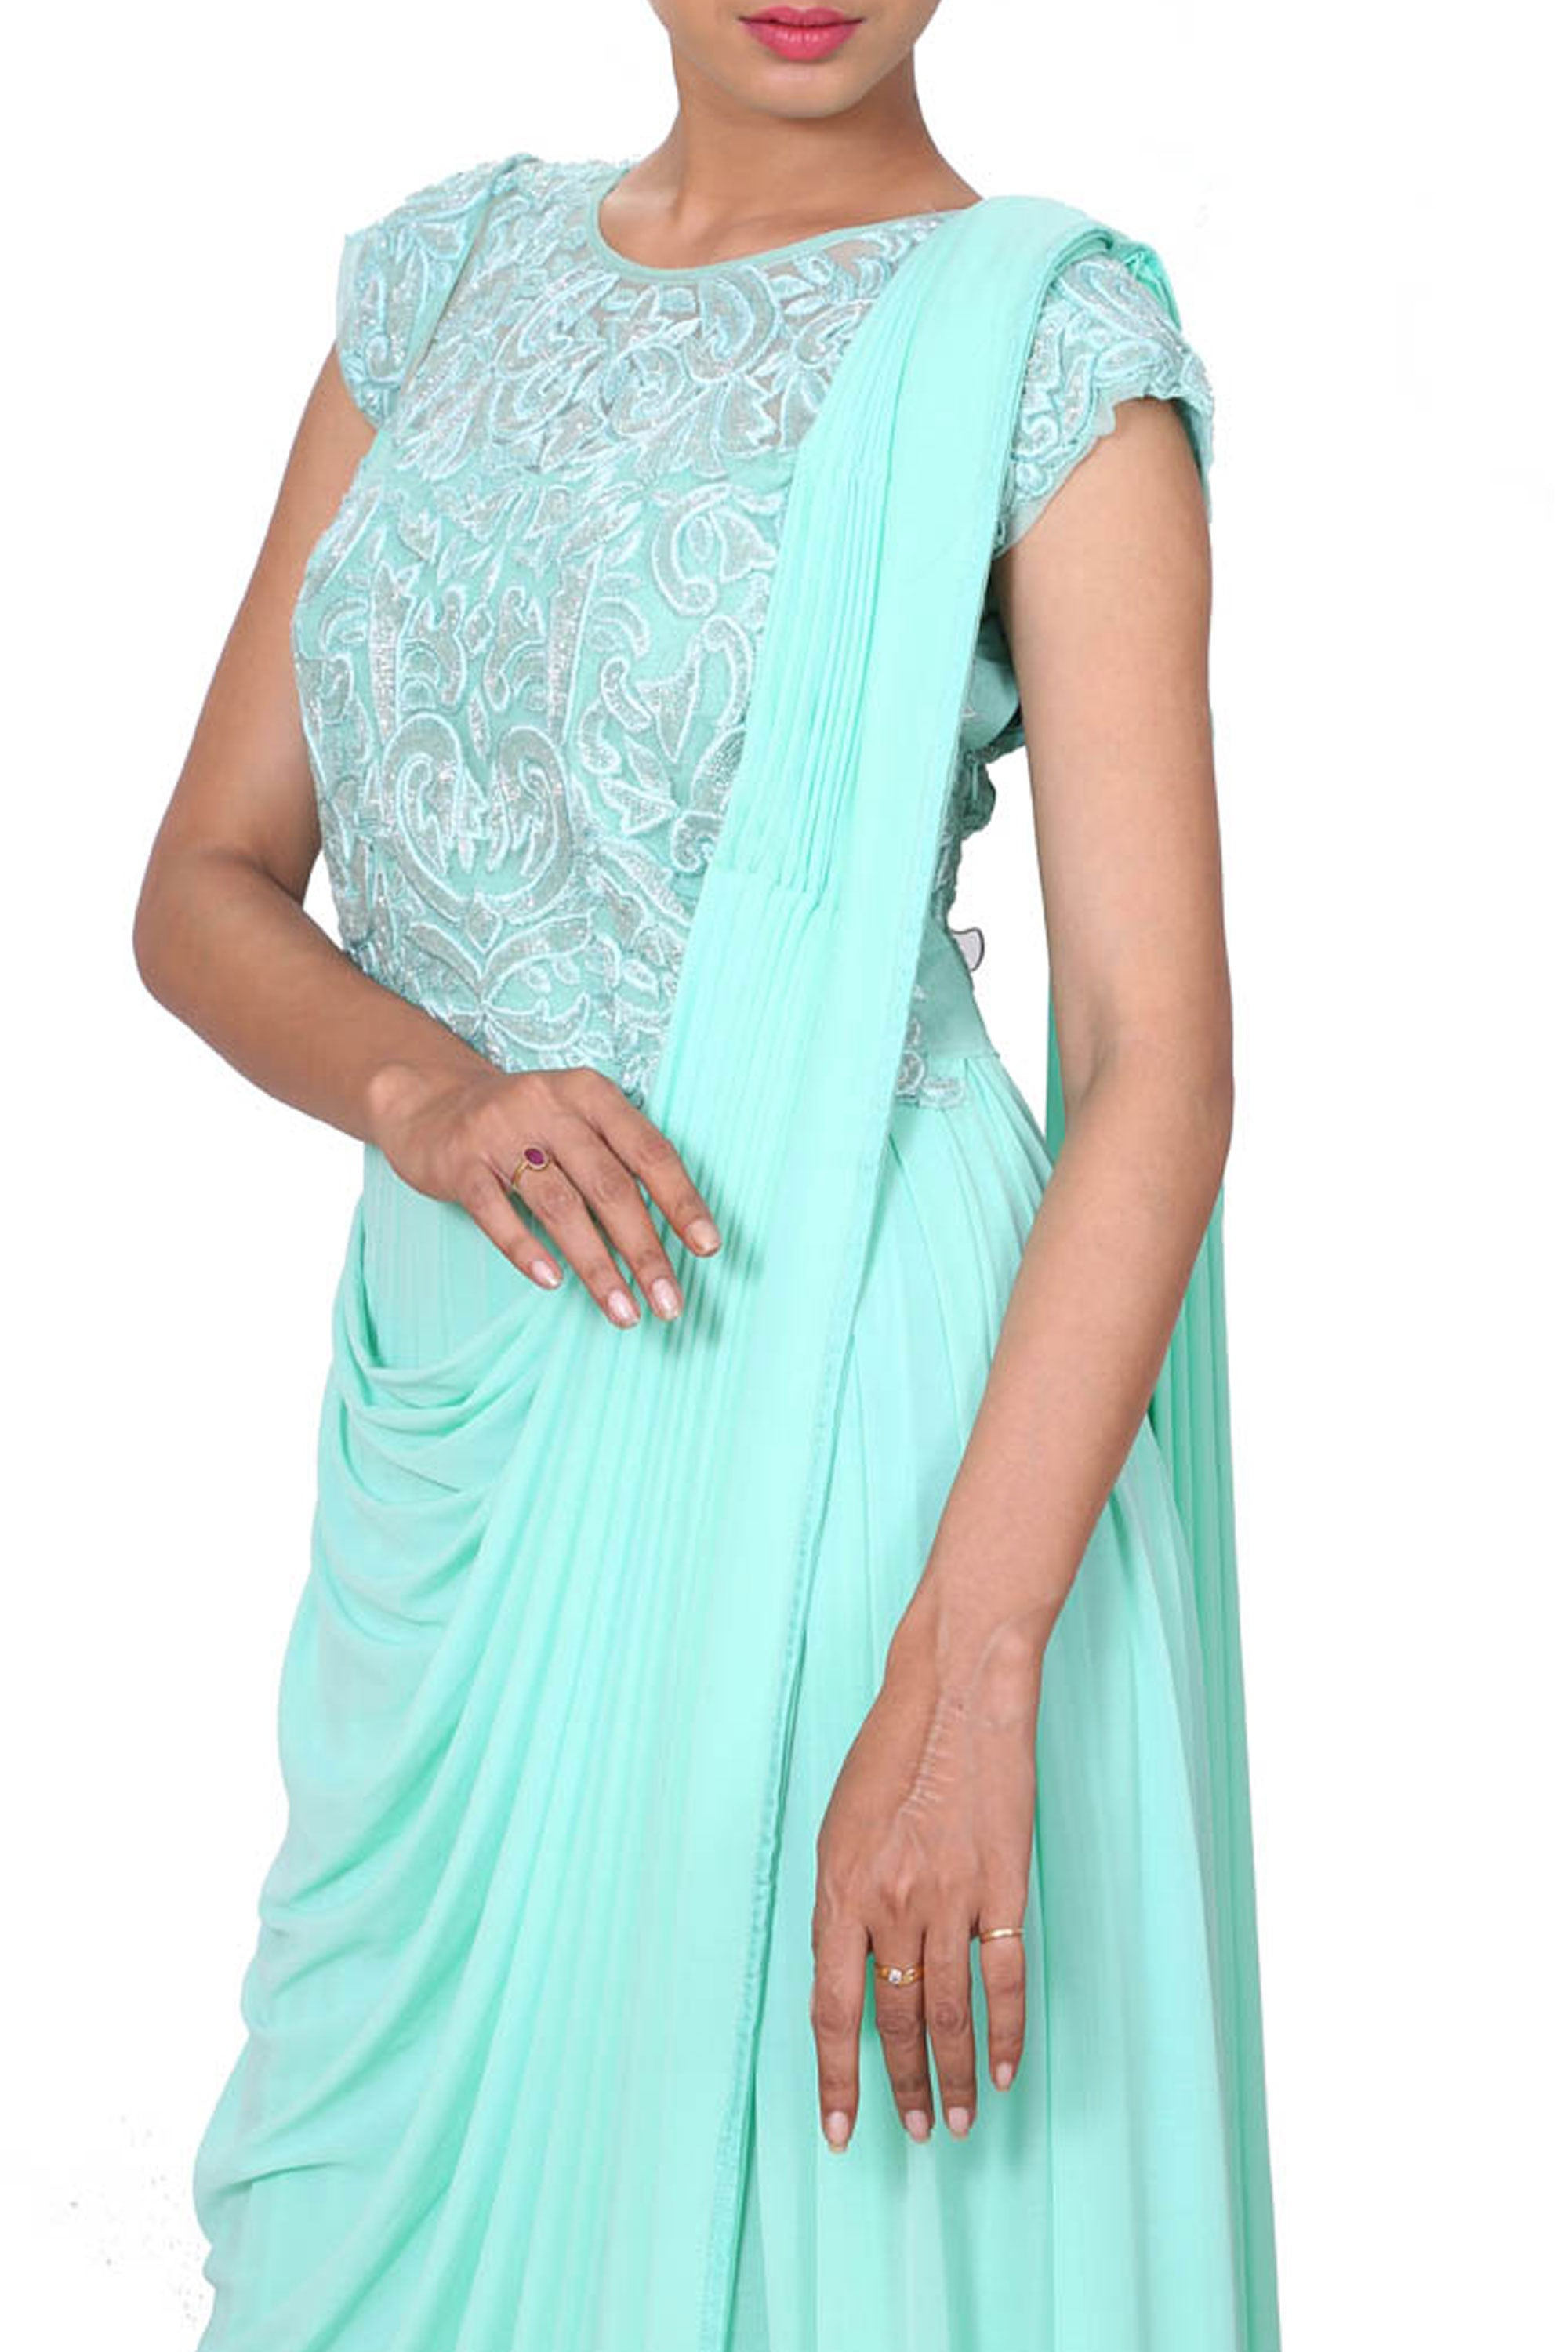 Aqua Drape Dress With Embroidered Waist Length Yoke Closeup